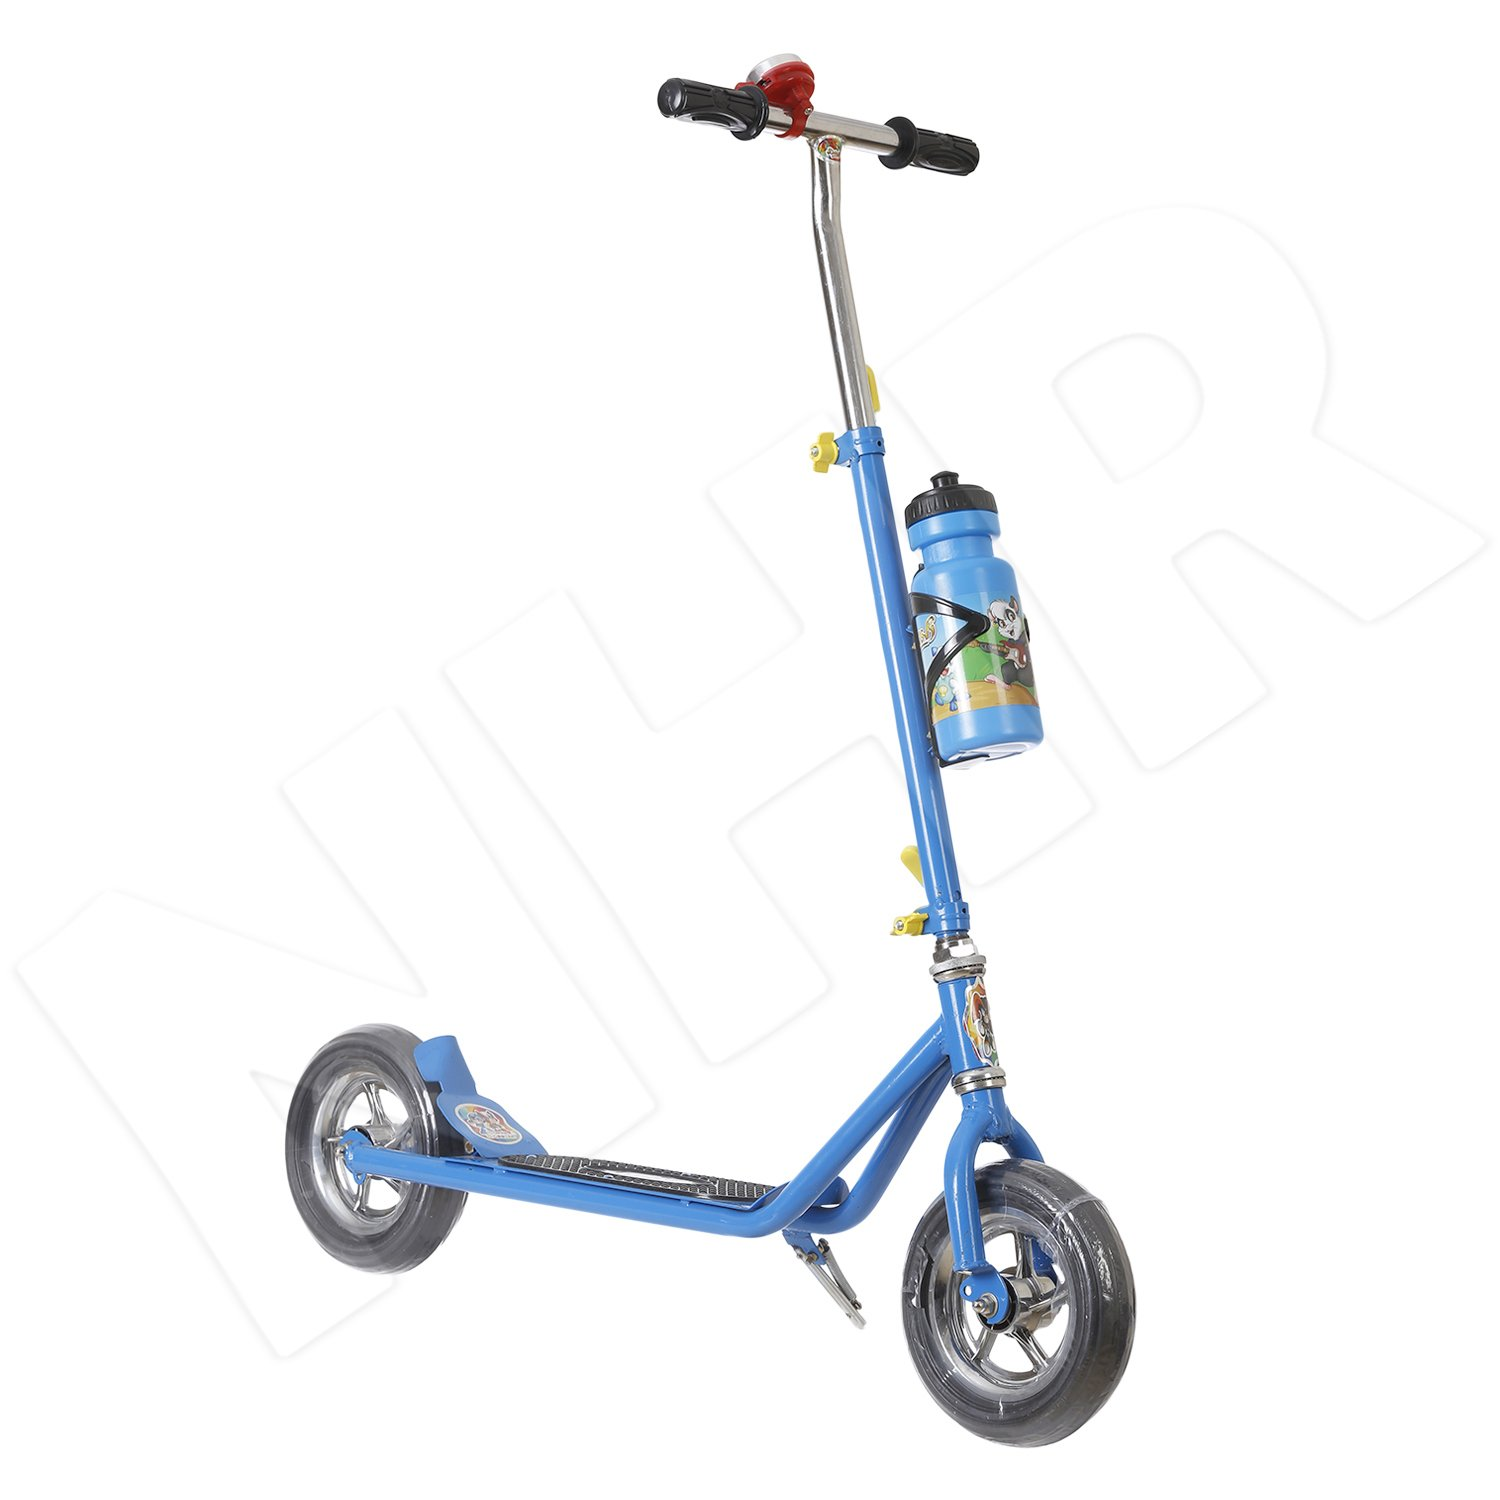 Archana NHR Power Ranger Scooter with Sipper, Bell n Stand- Large Size (Height Adjustable to 90 cm for Kids Upto 10 Years) (Blue) (B07923JVBG) Amazon Price History, Amazon Price Tracker